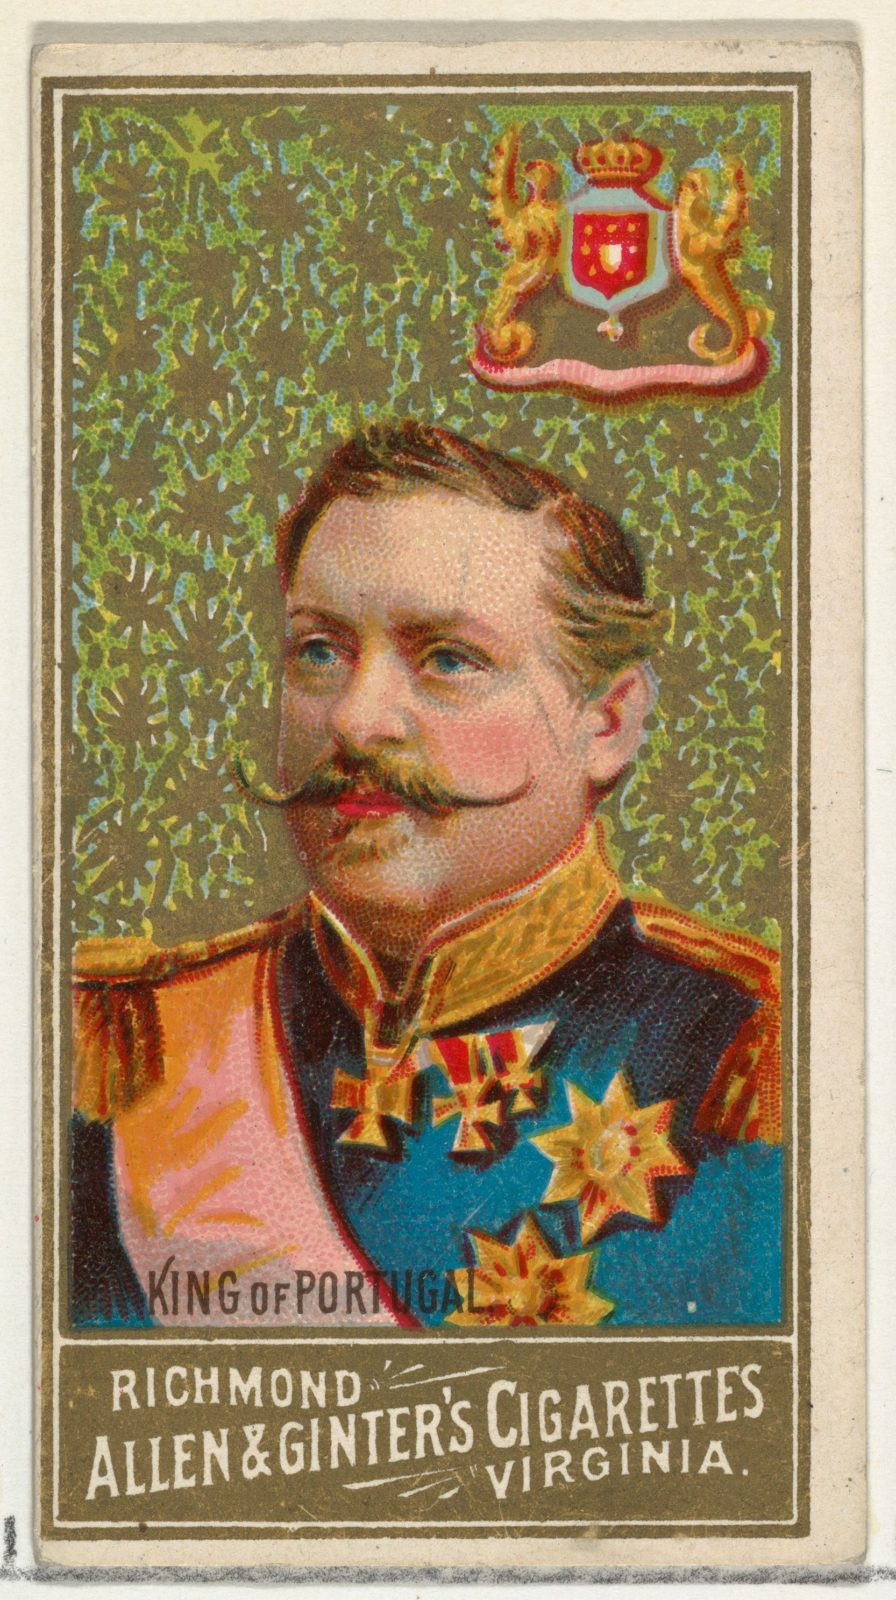 King of Portugal, from World's Sovereigns series (N34) for Allen & Ginter Cigarettes